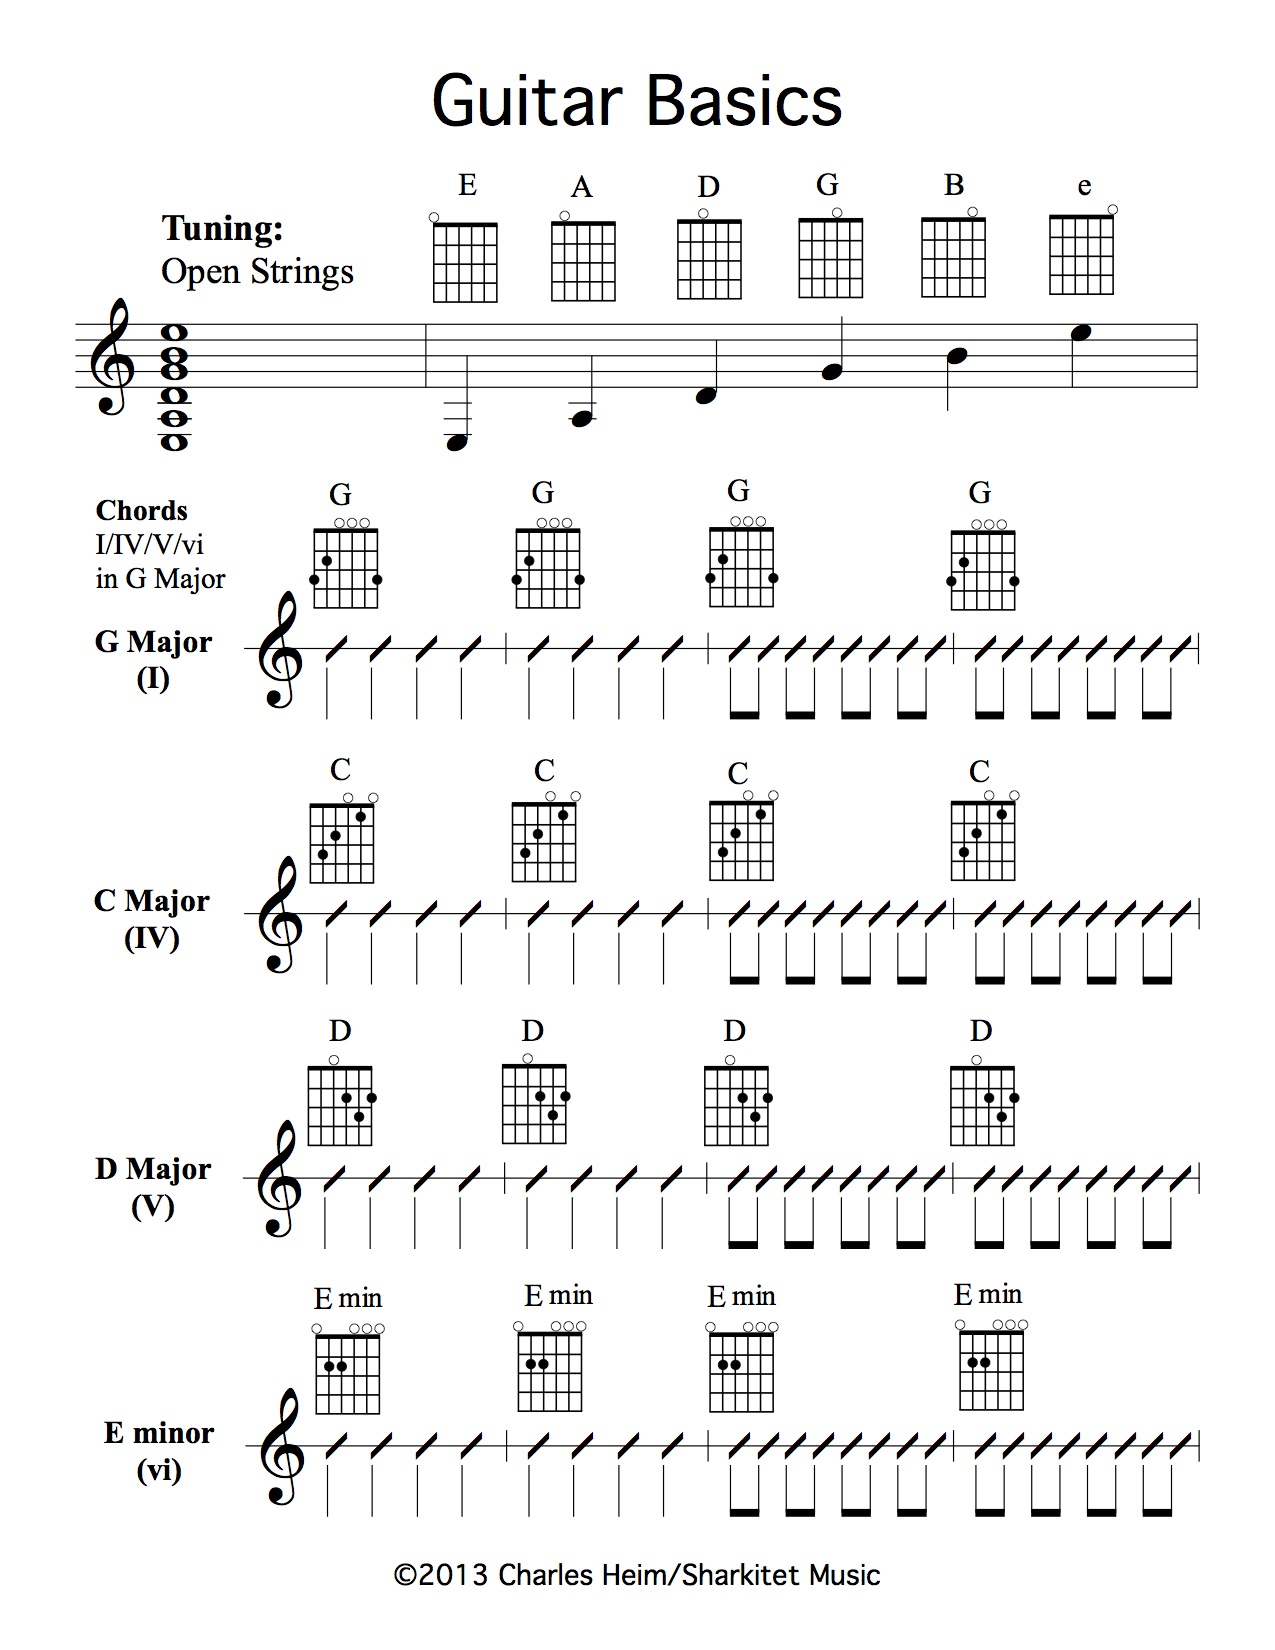 Guitar Basics in G.jpg